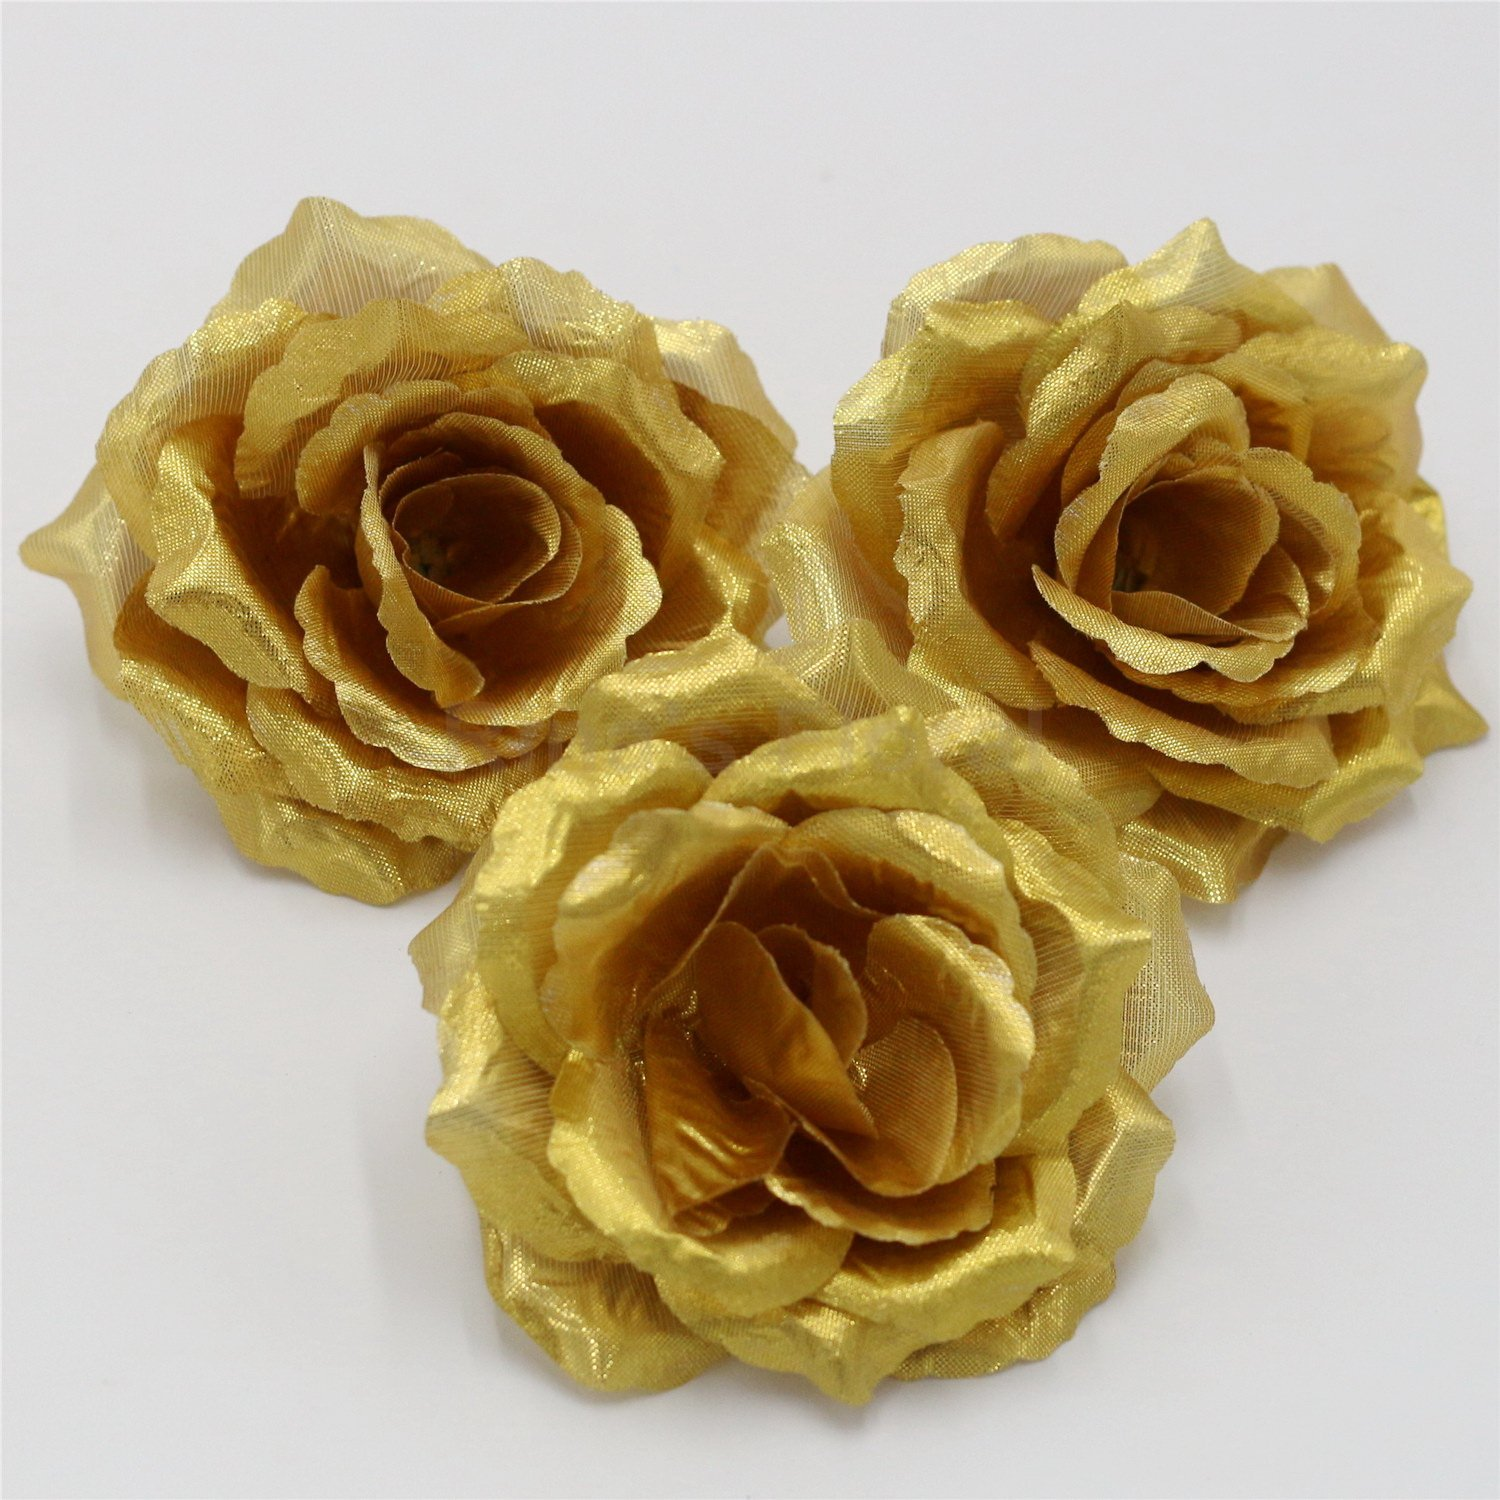 Amazon silk flowers wholesale 100 artificial silk rose heads amazon silk flowers wholesale 100 artificial silk rose heads bulk flowers 10cm for flower wall kissing balls wedding supplies gold home kitchen izmirmasajfo